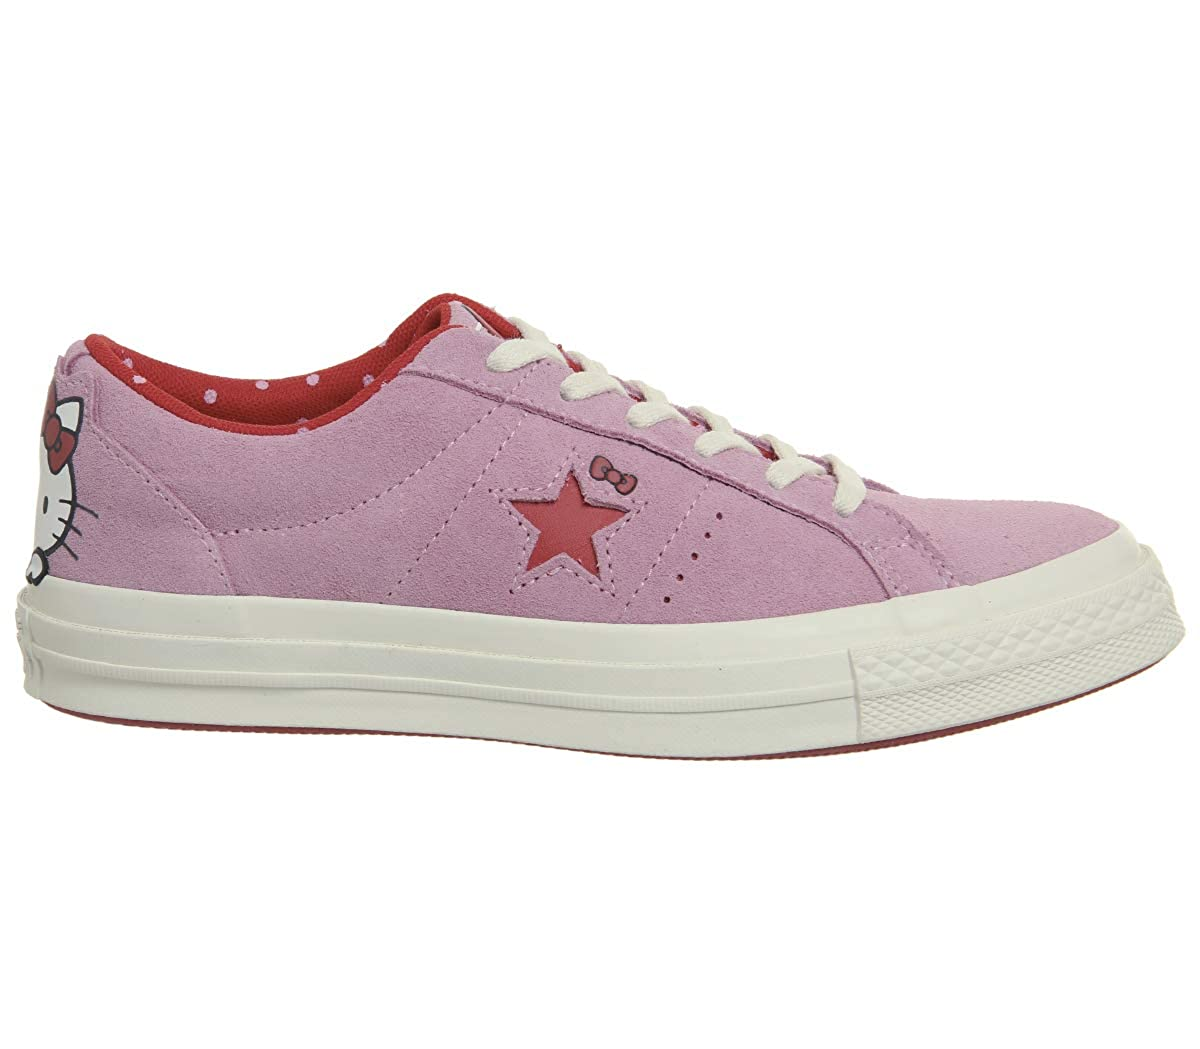 CONVERSE Designer Chucks Schuhe - ALL STAR - - -  8f14d1